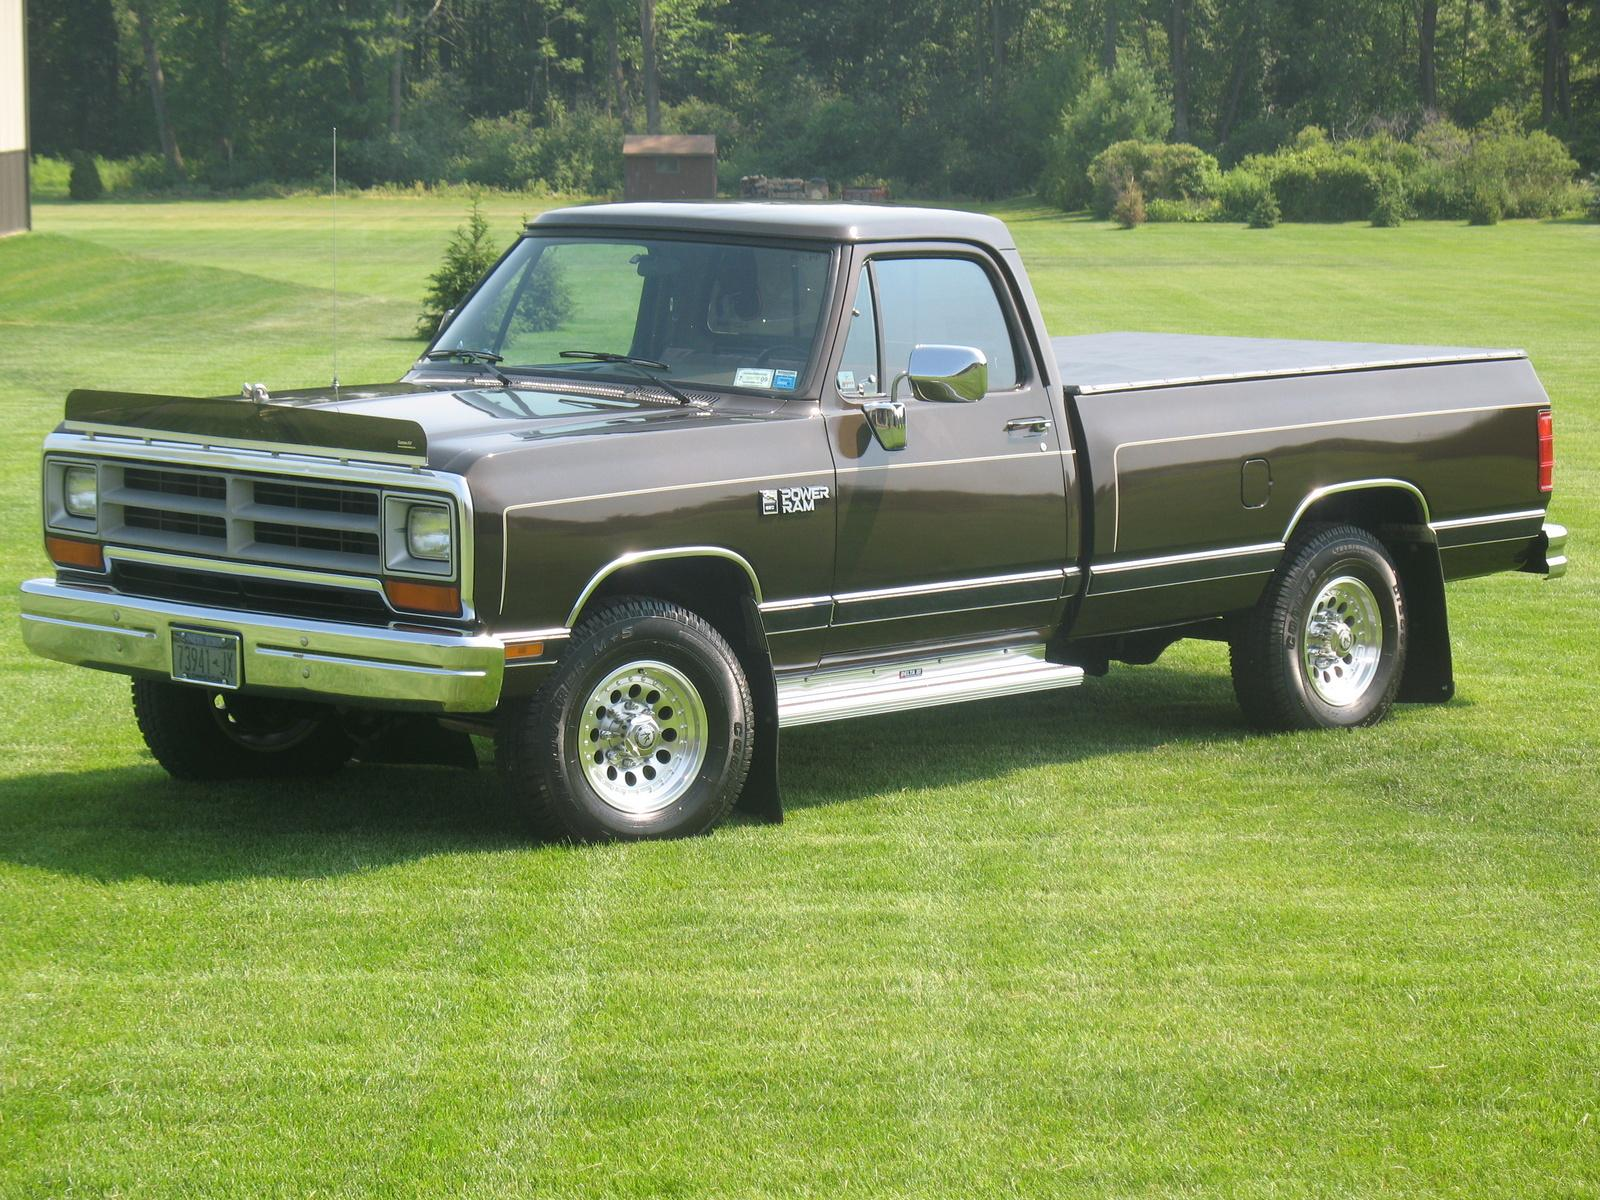 1990 dodge ram 150 information and photos zombiedrive. Black Bedroom Furniture Sets. Home Design Ideas